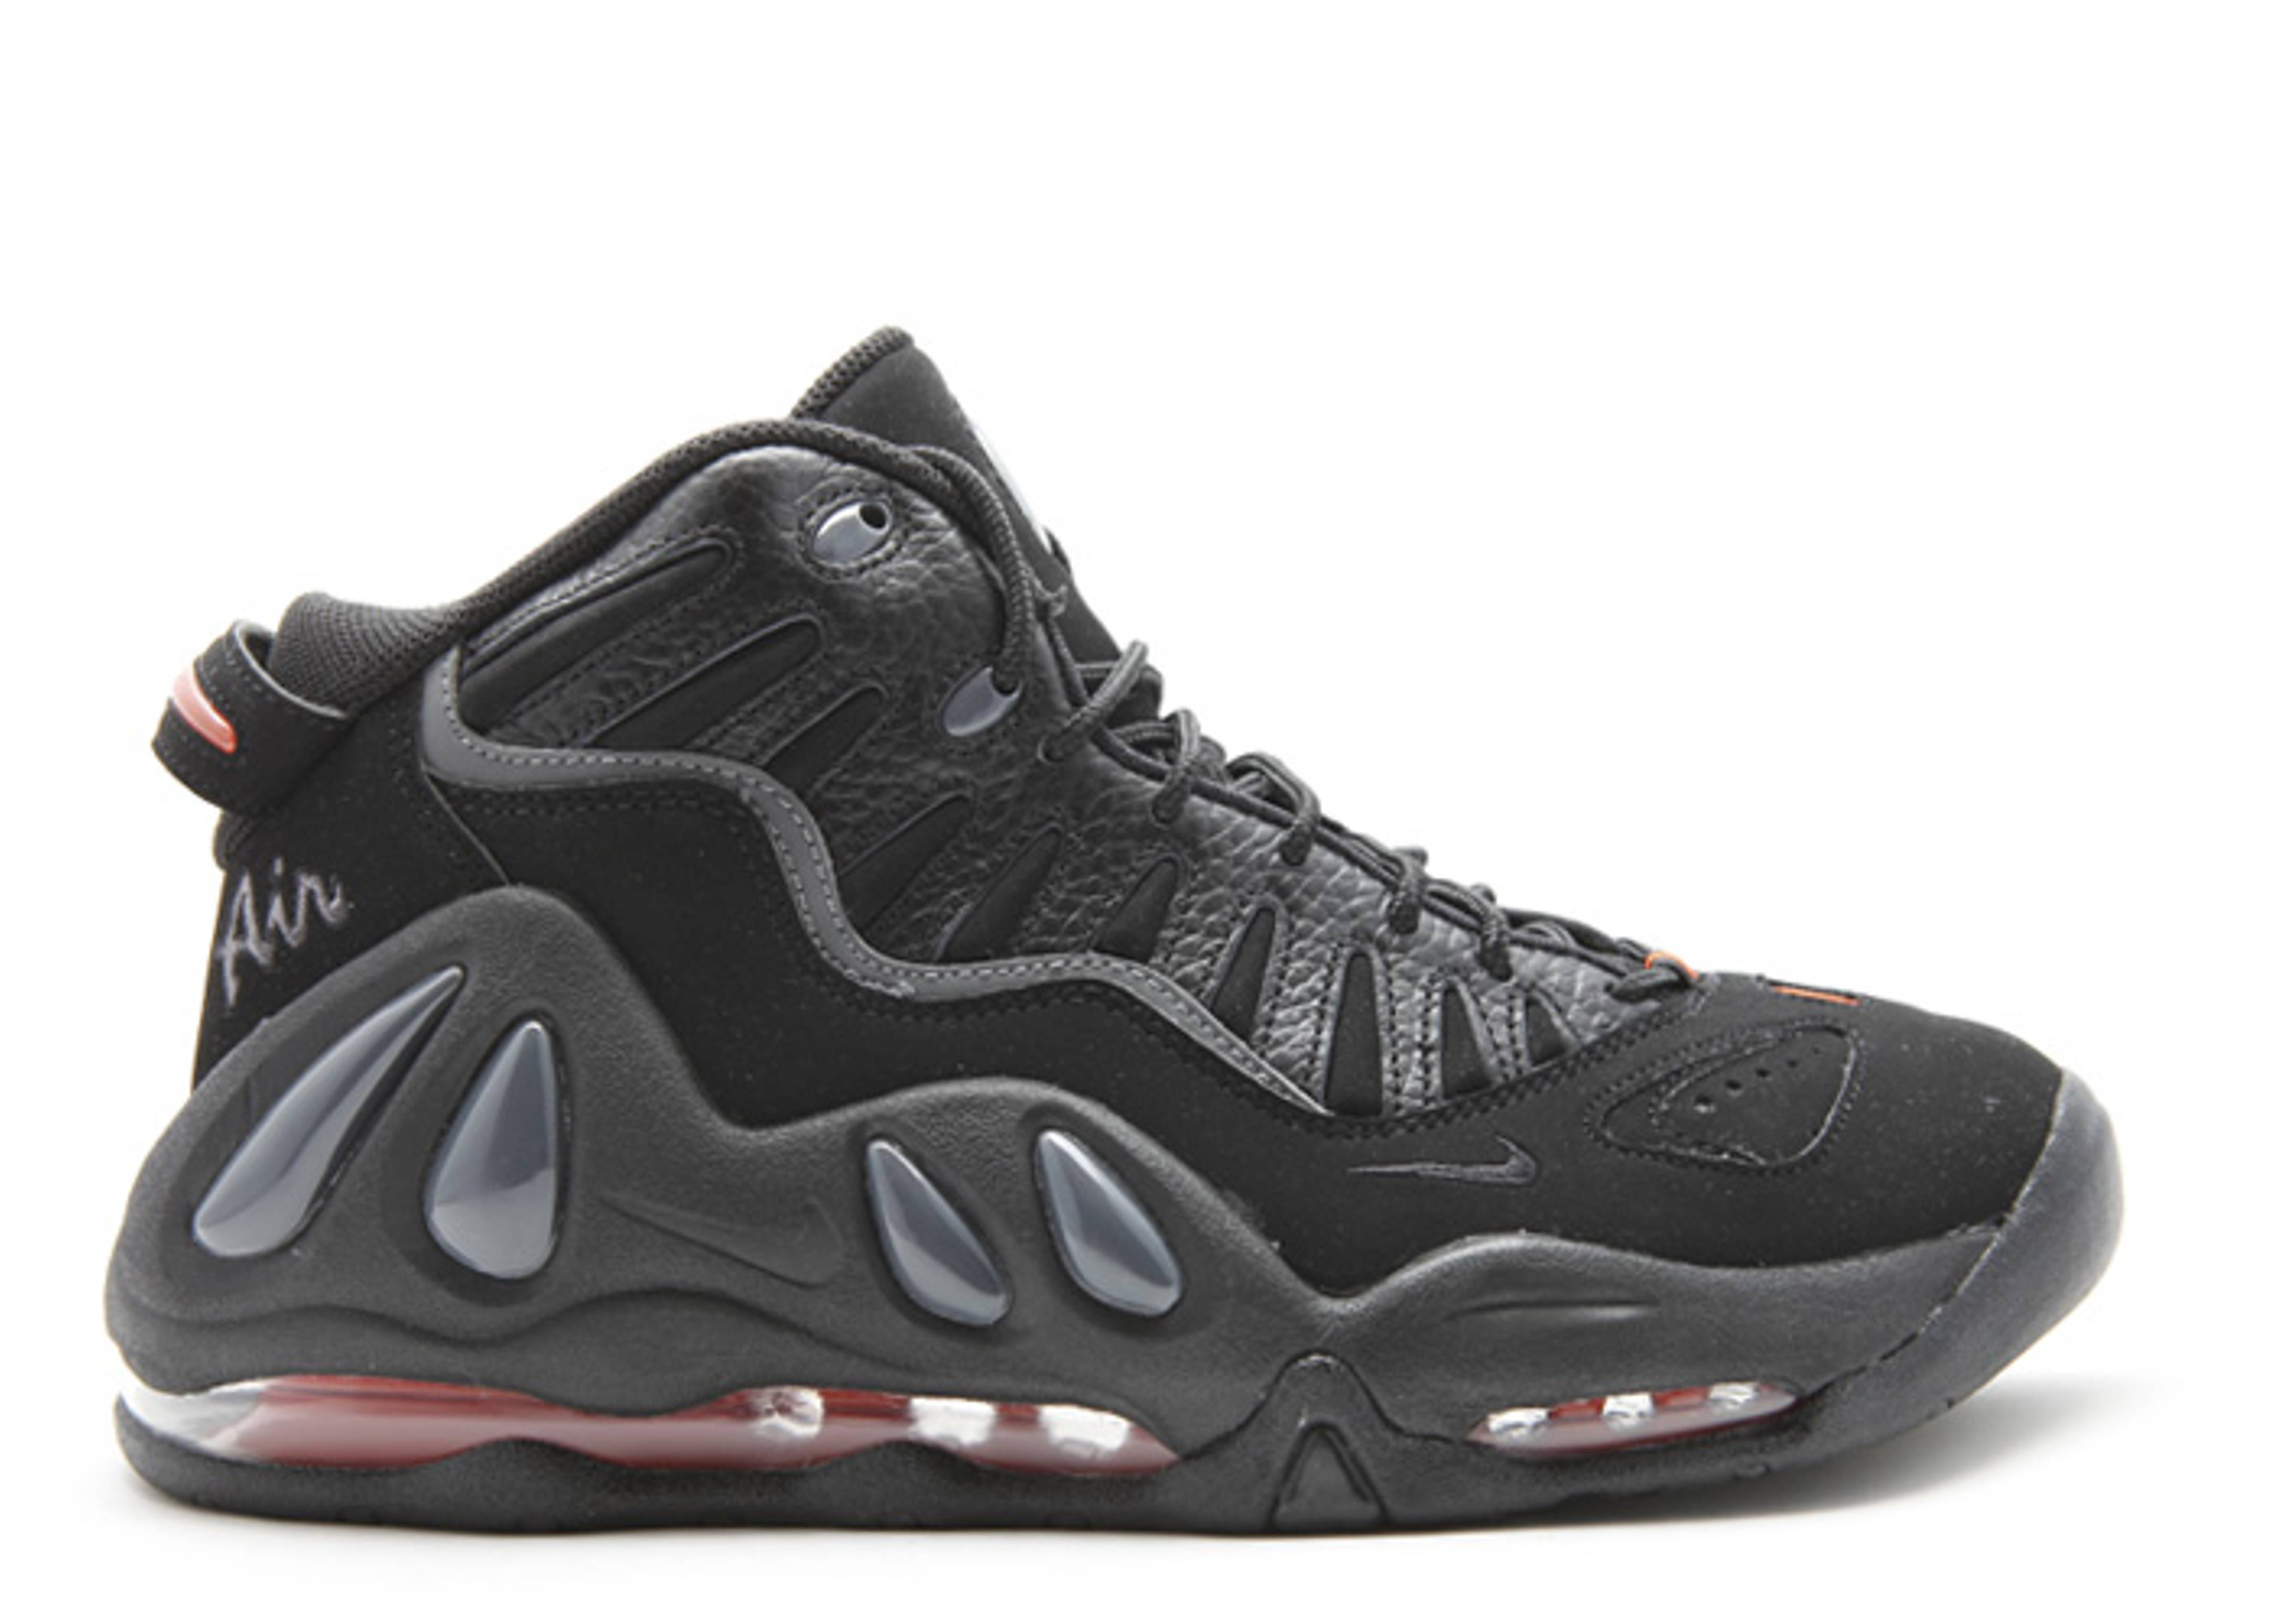 where can i buy nike air max uptempo 97 scottie pippen 14165